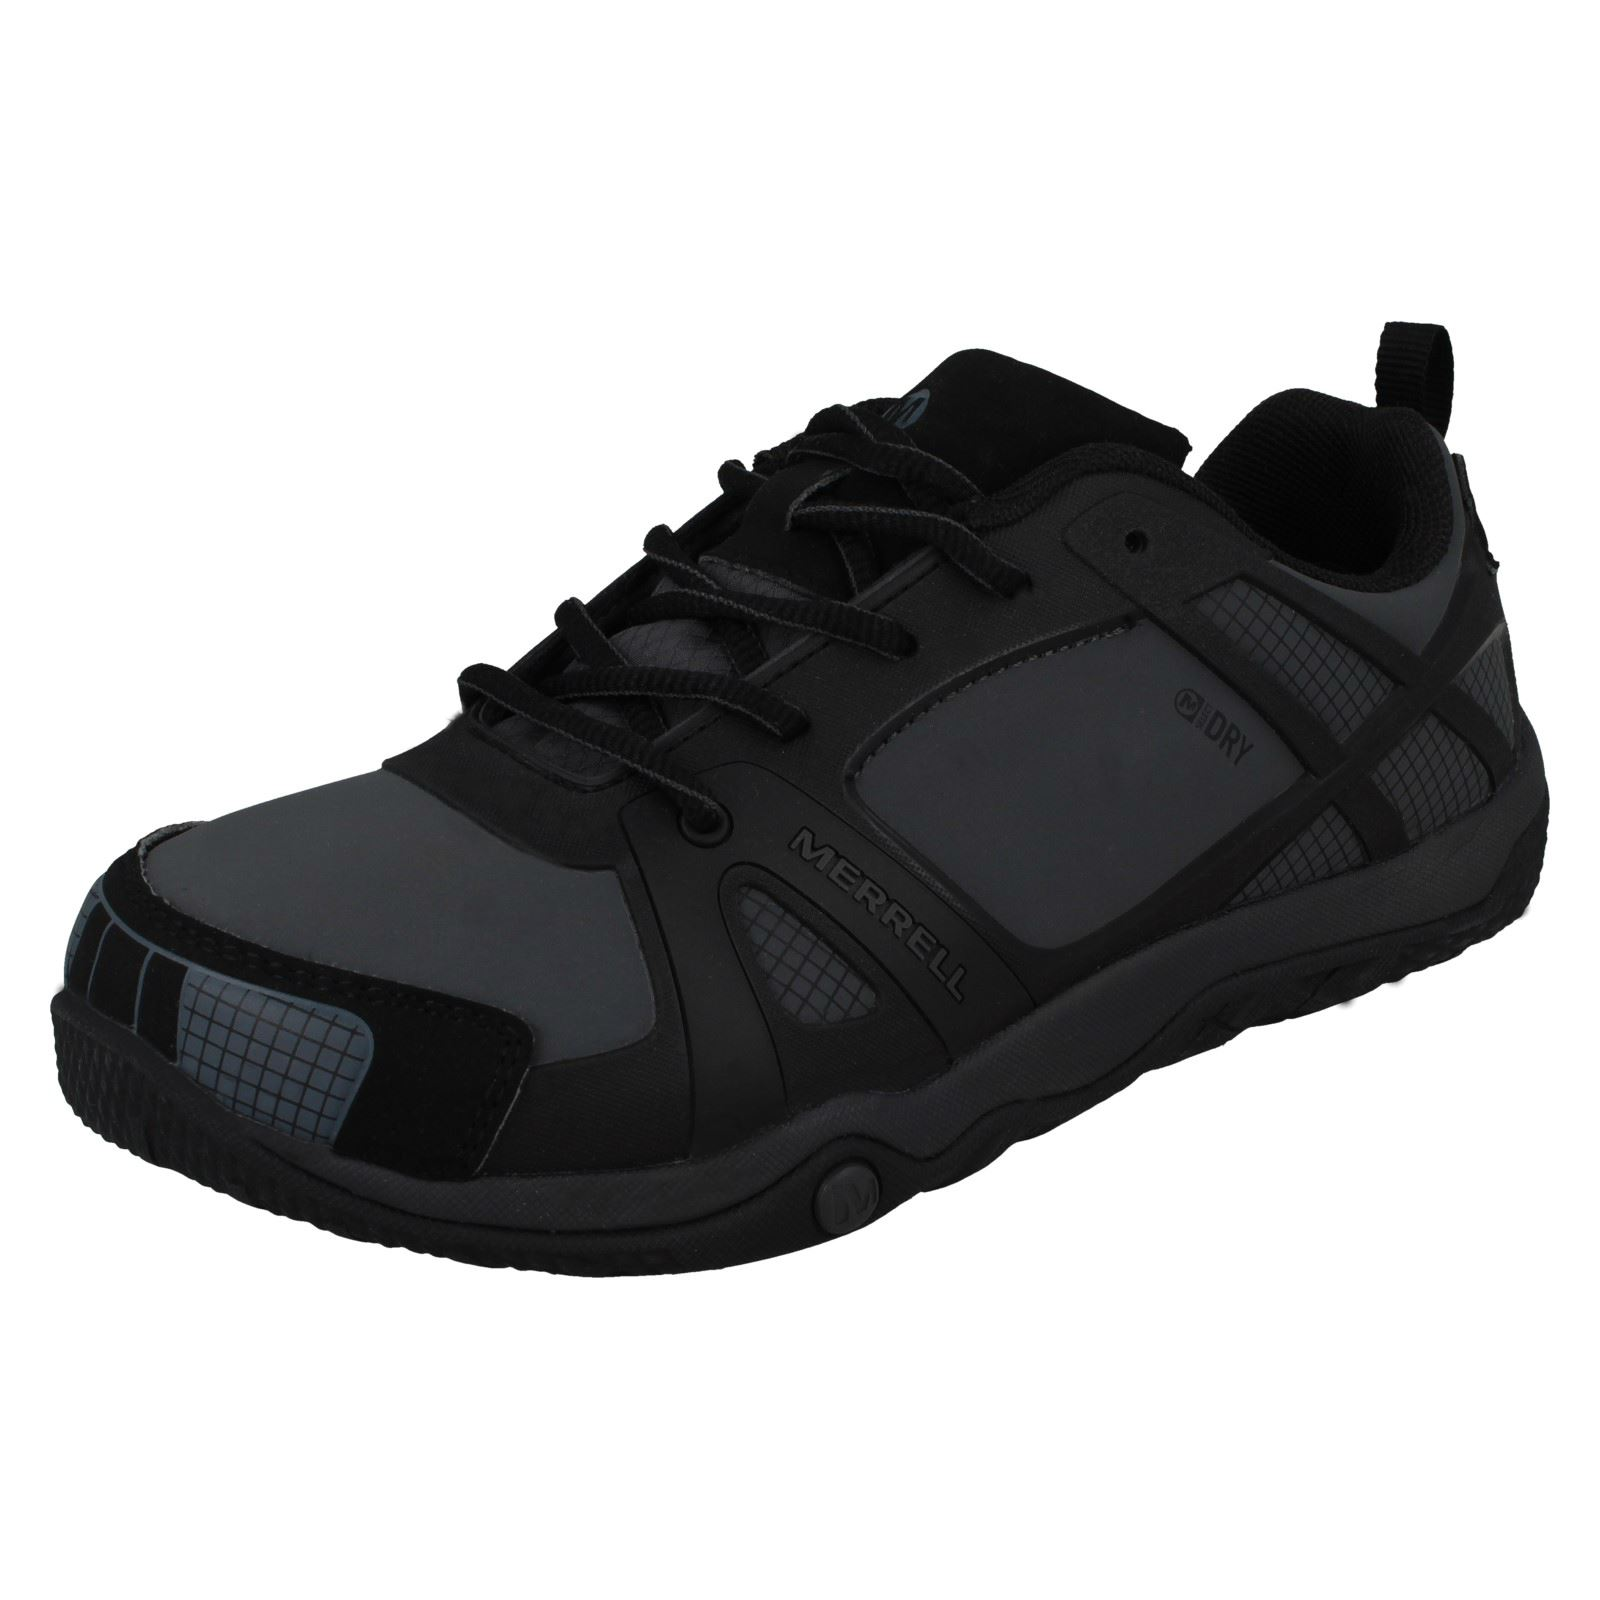 2d2d0456 Details about Boys Merrell Casual Trainers 'Proterra Waterproof Kids J95463'